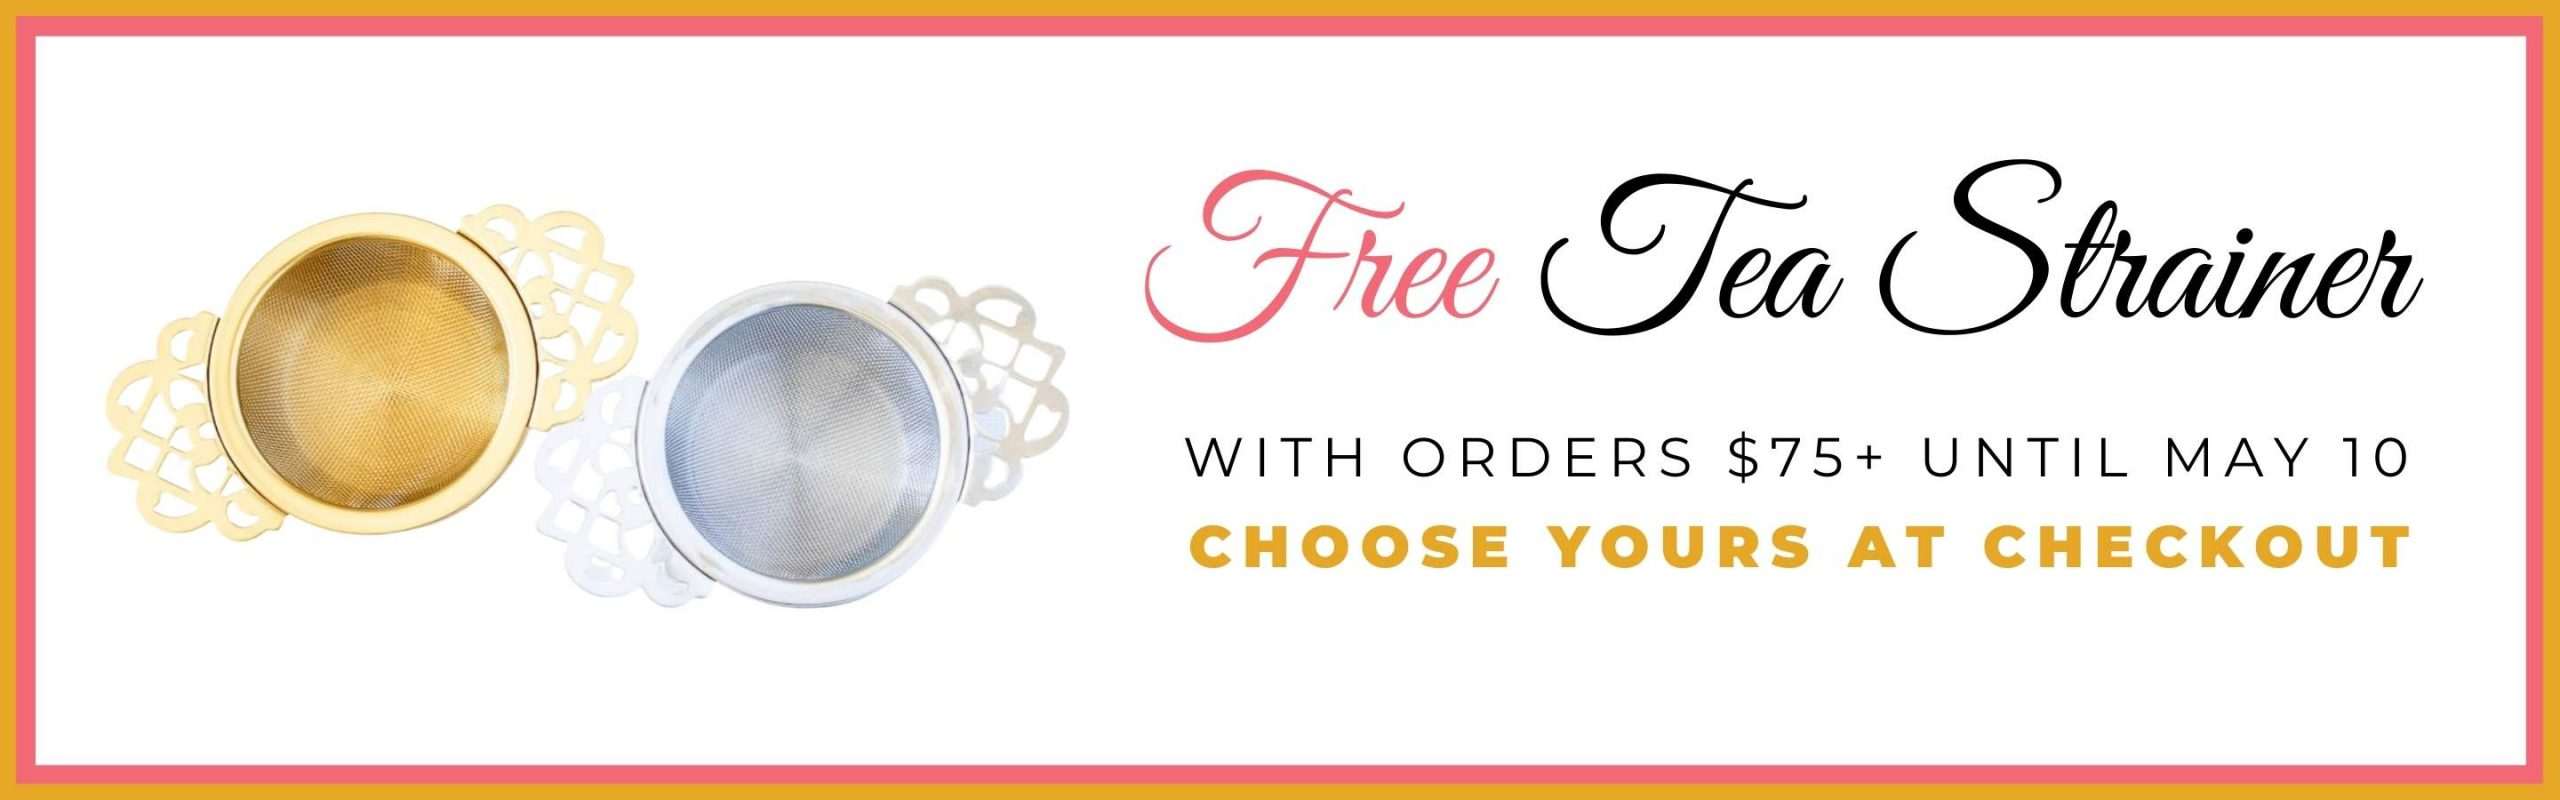 Tea Strainer with Purchase Banner